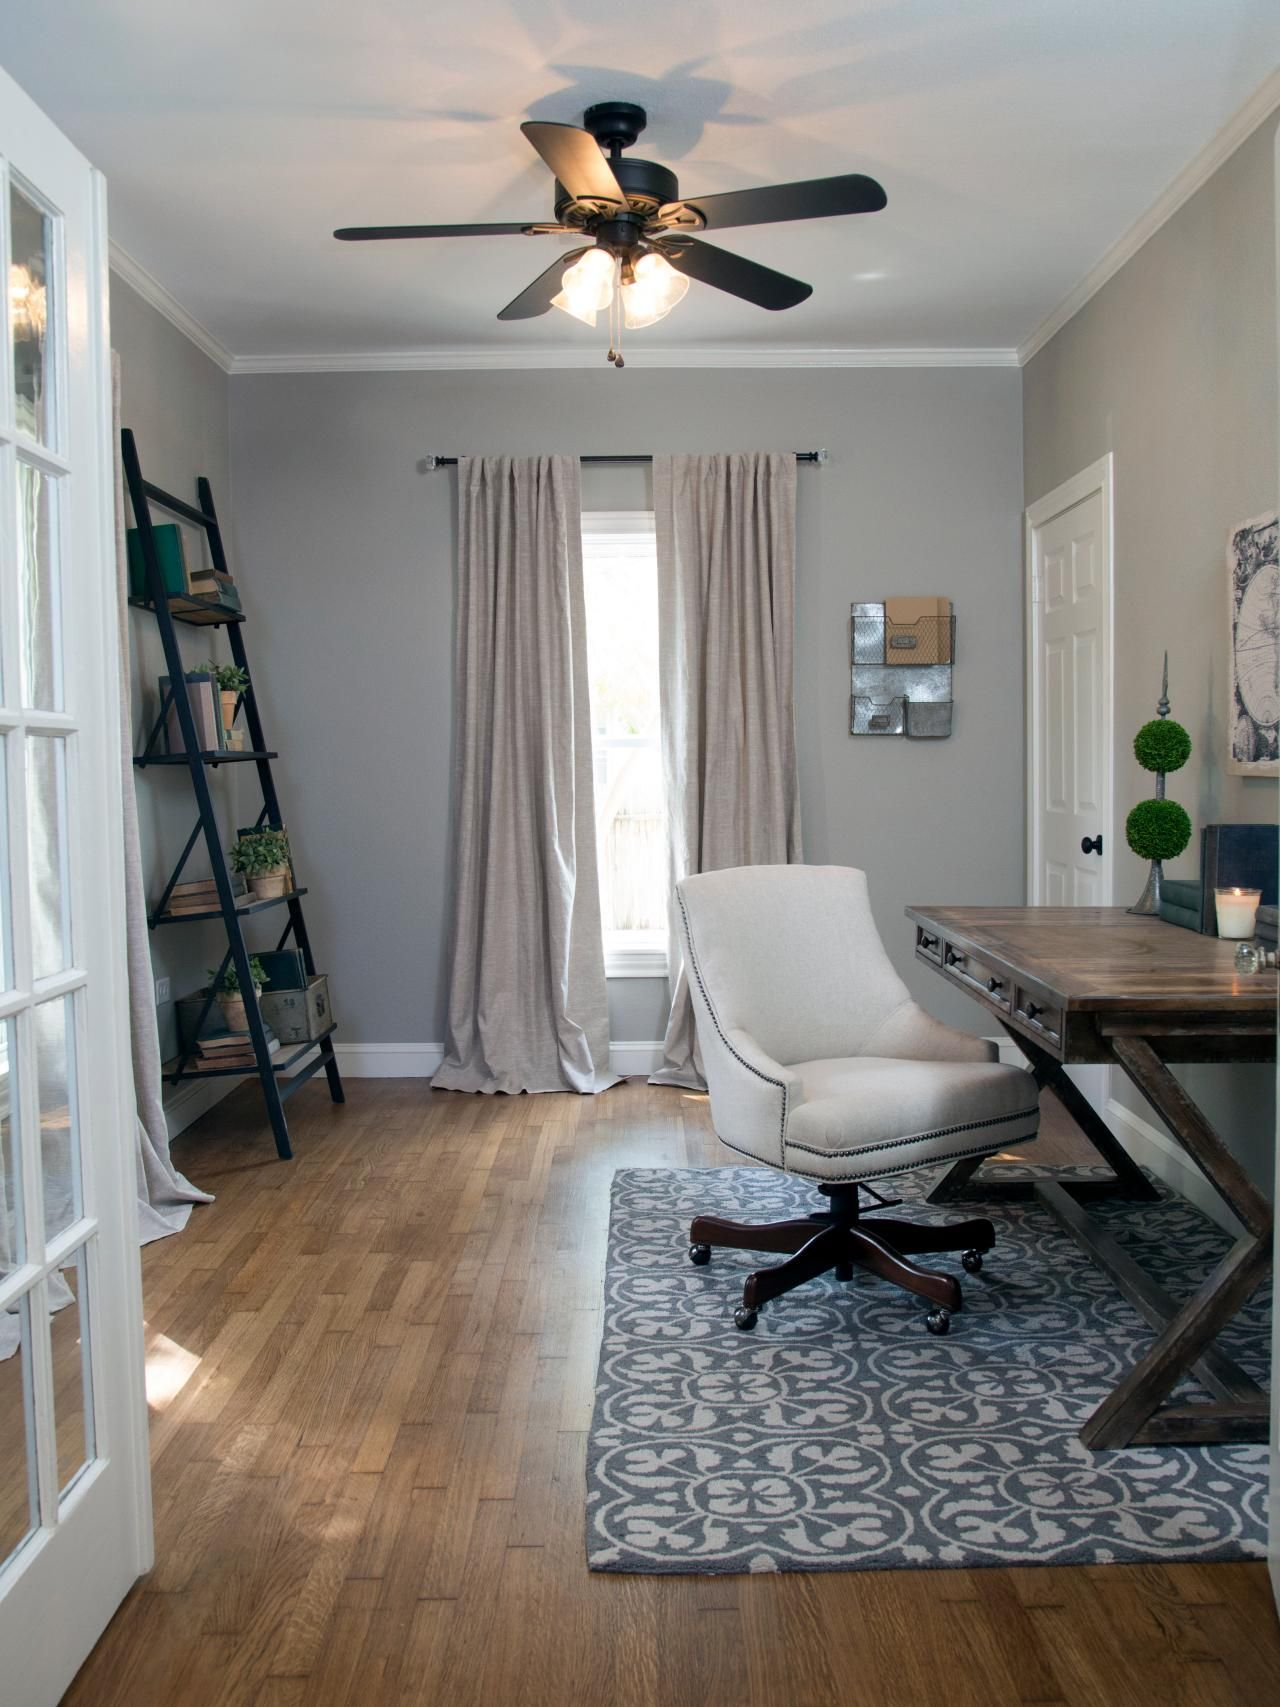 Fixer Upper Wohnzimmer | A 1940s Vintage Fixer Upper For First Time ...